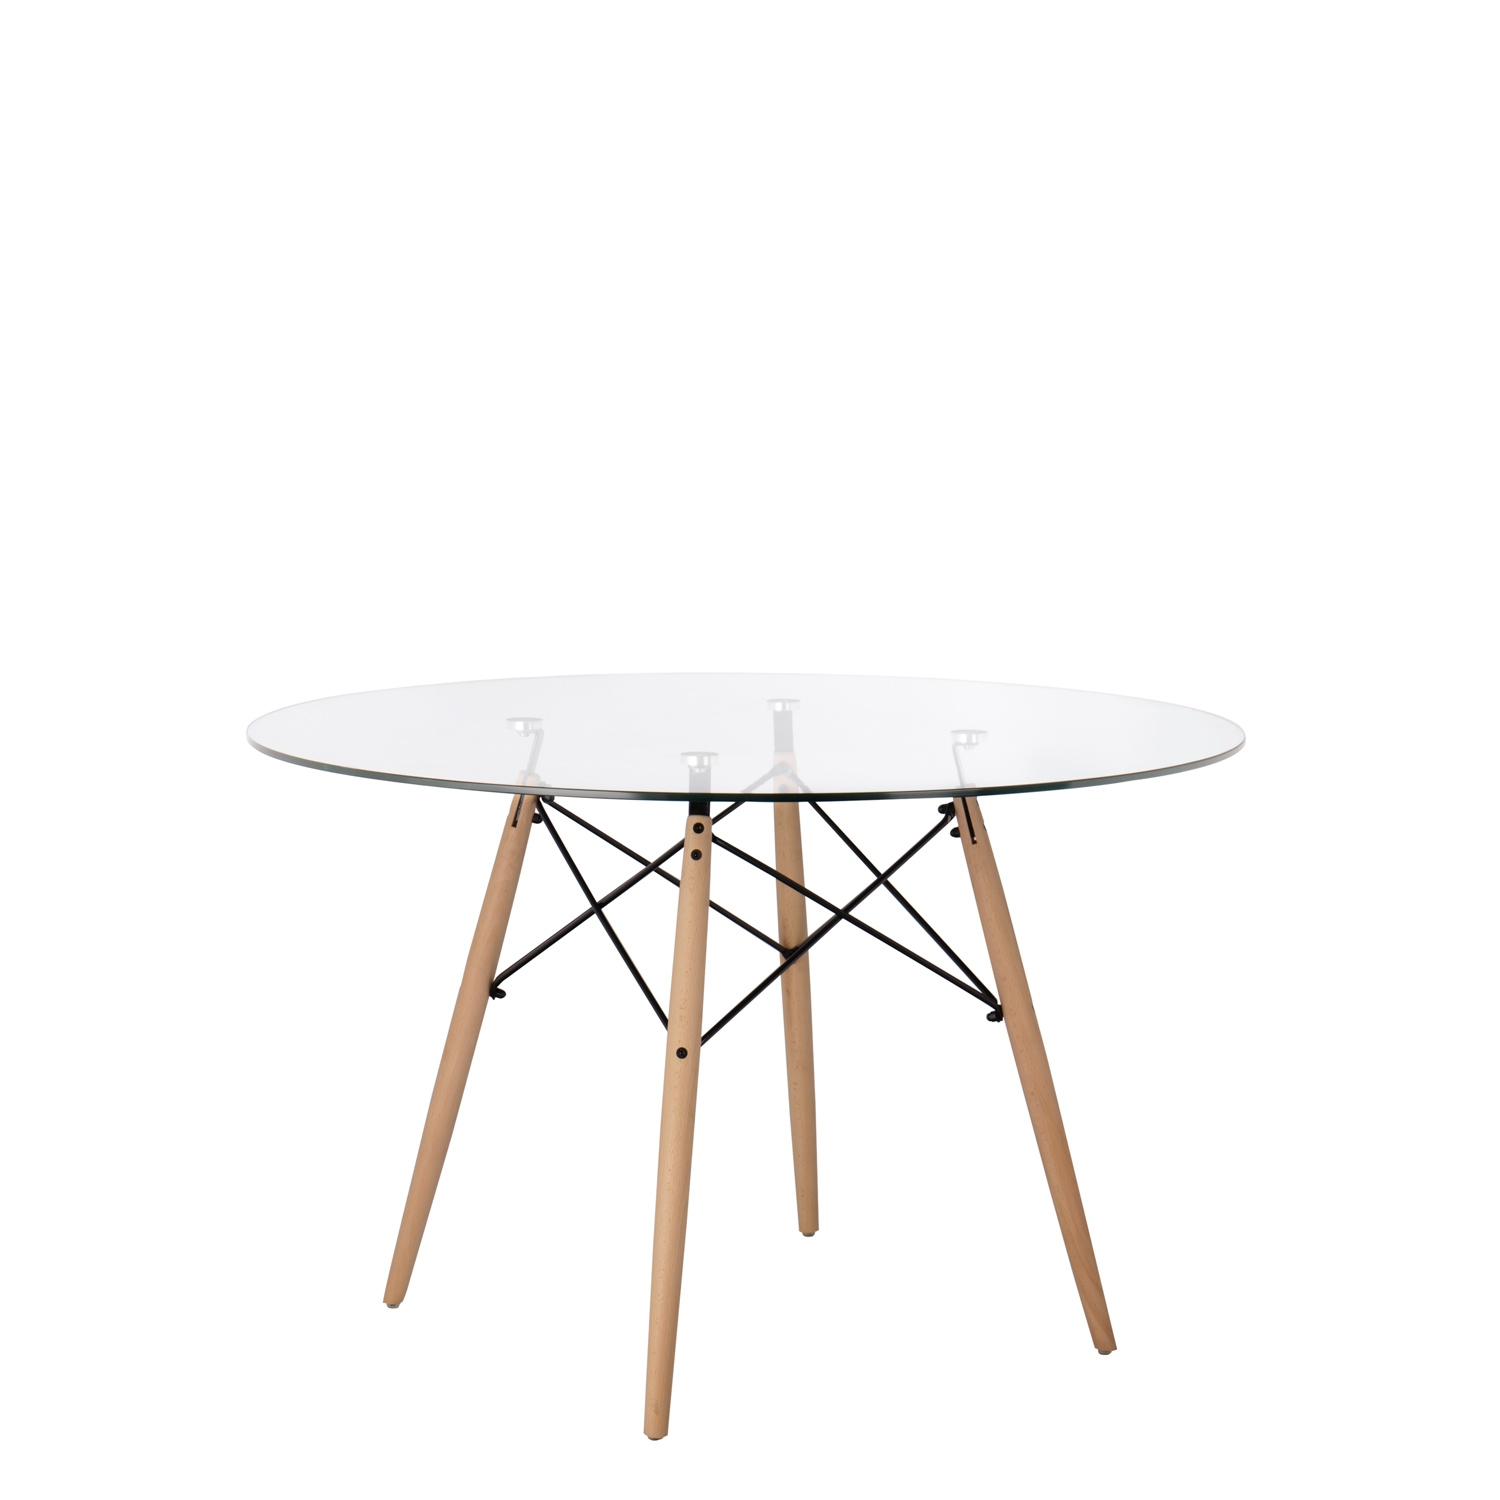 Table Ronde Salon De Jardin Best Of Table Brich Scand ˜120 Of 40 Best Of Table Ronde Salon De Jardin